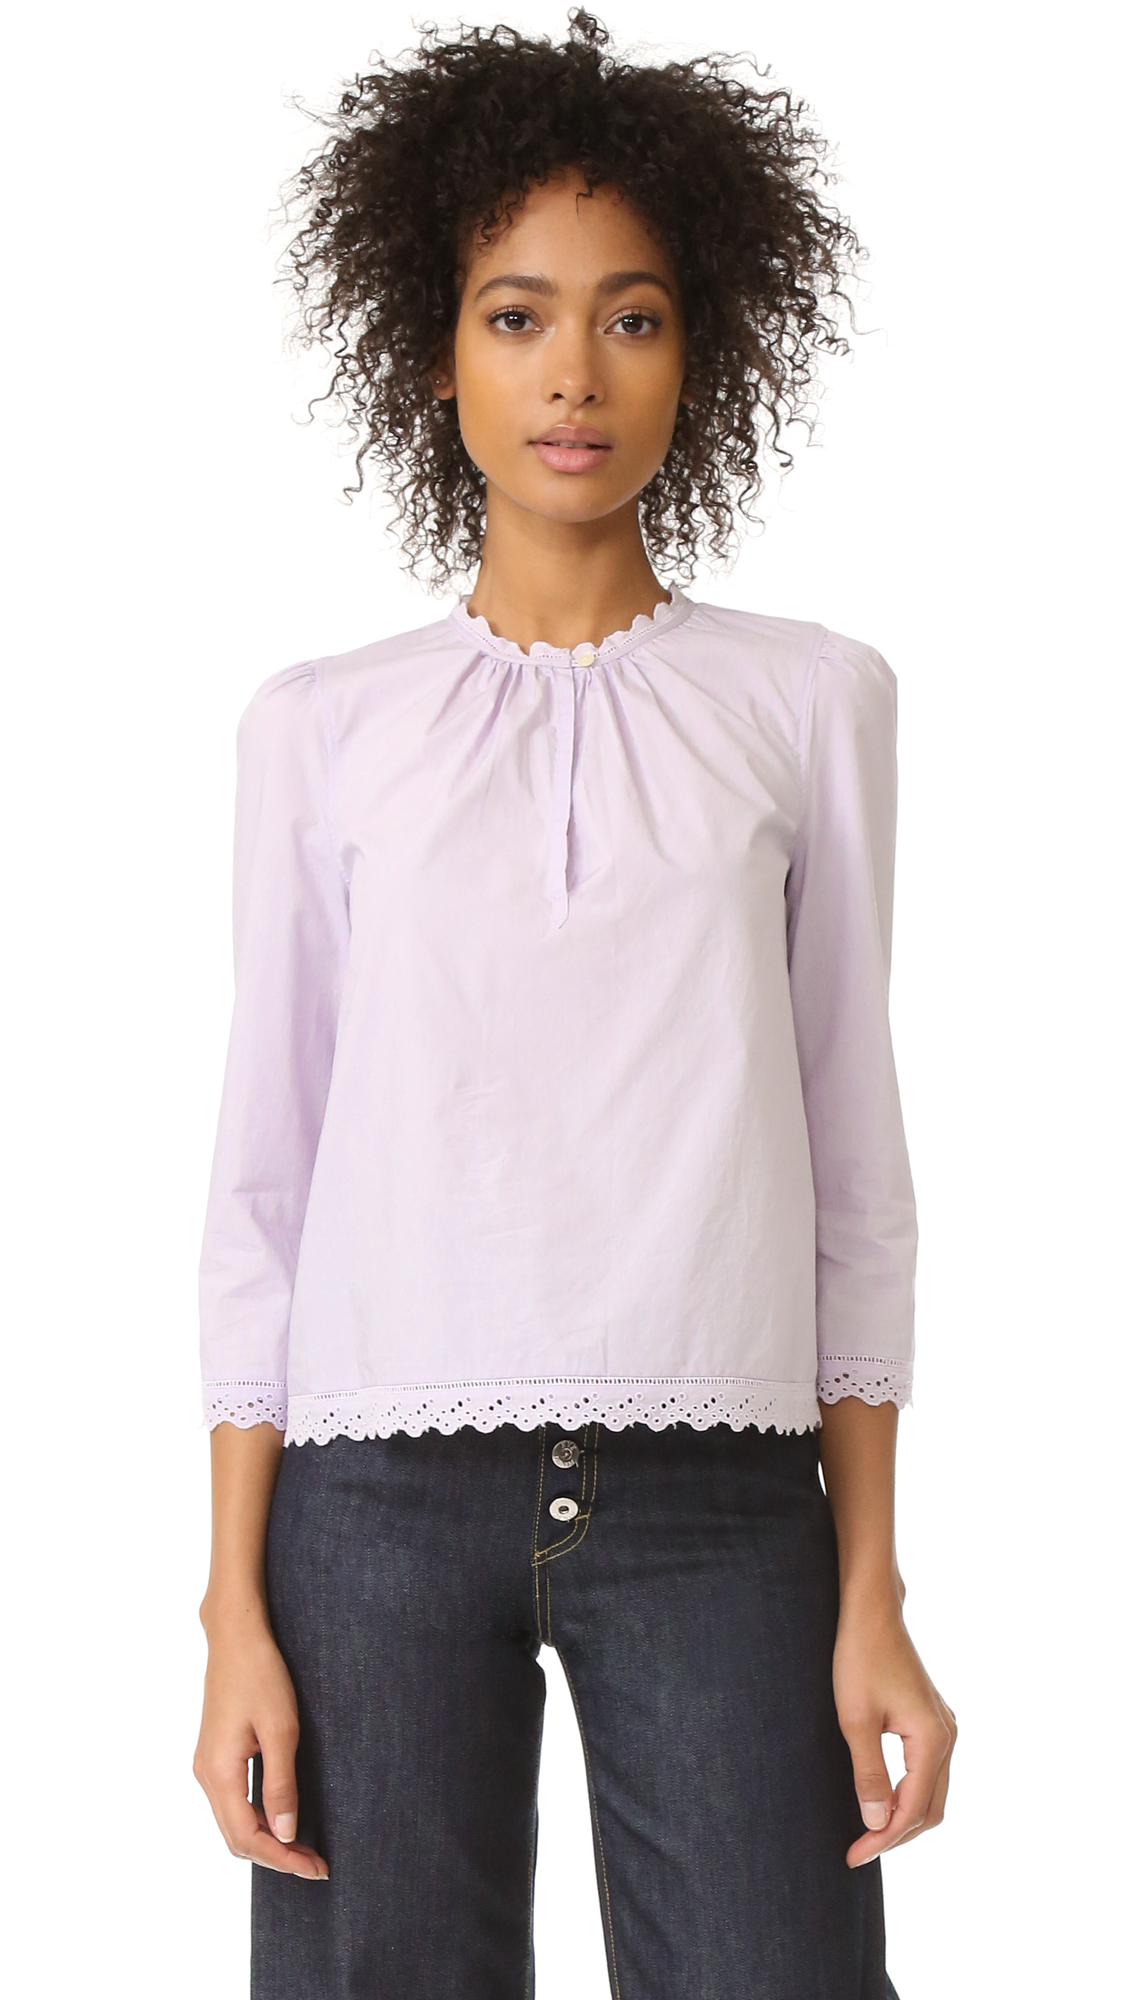 La Vie Rebecca Taylor Long Sleeve Pop Top With Eyelet Detail - Wisteria at Shopbop